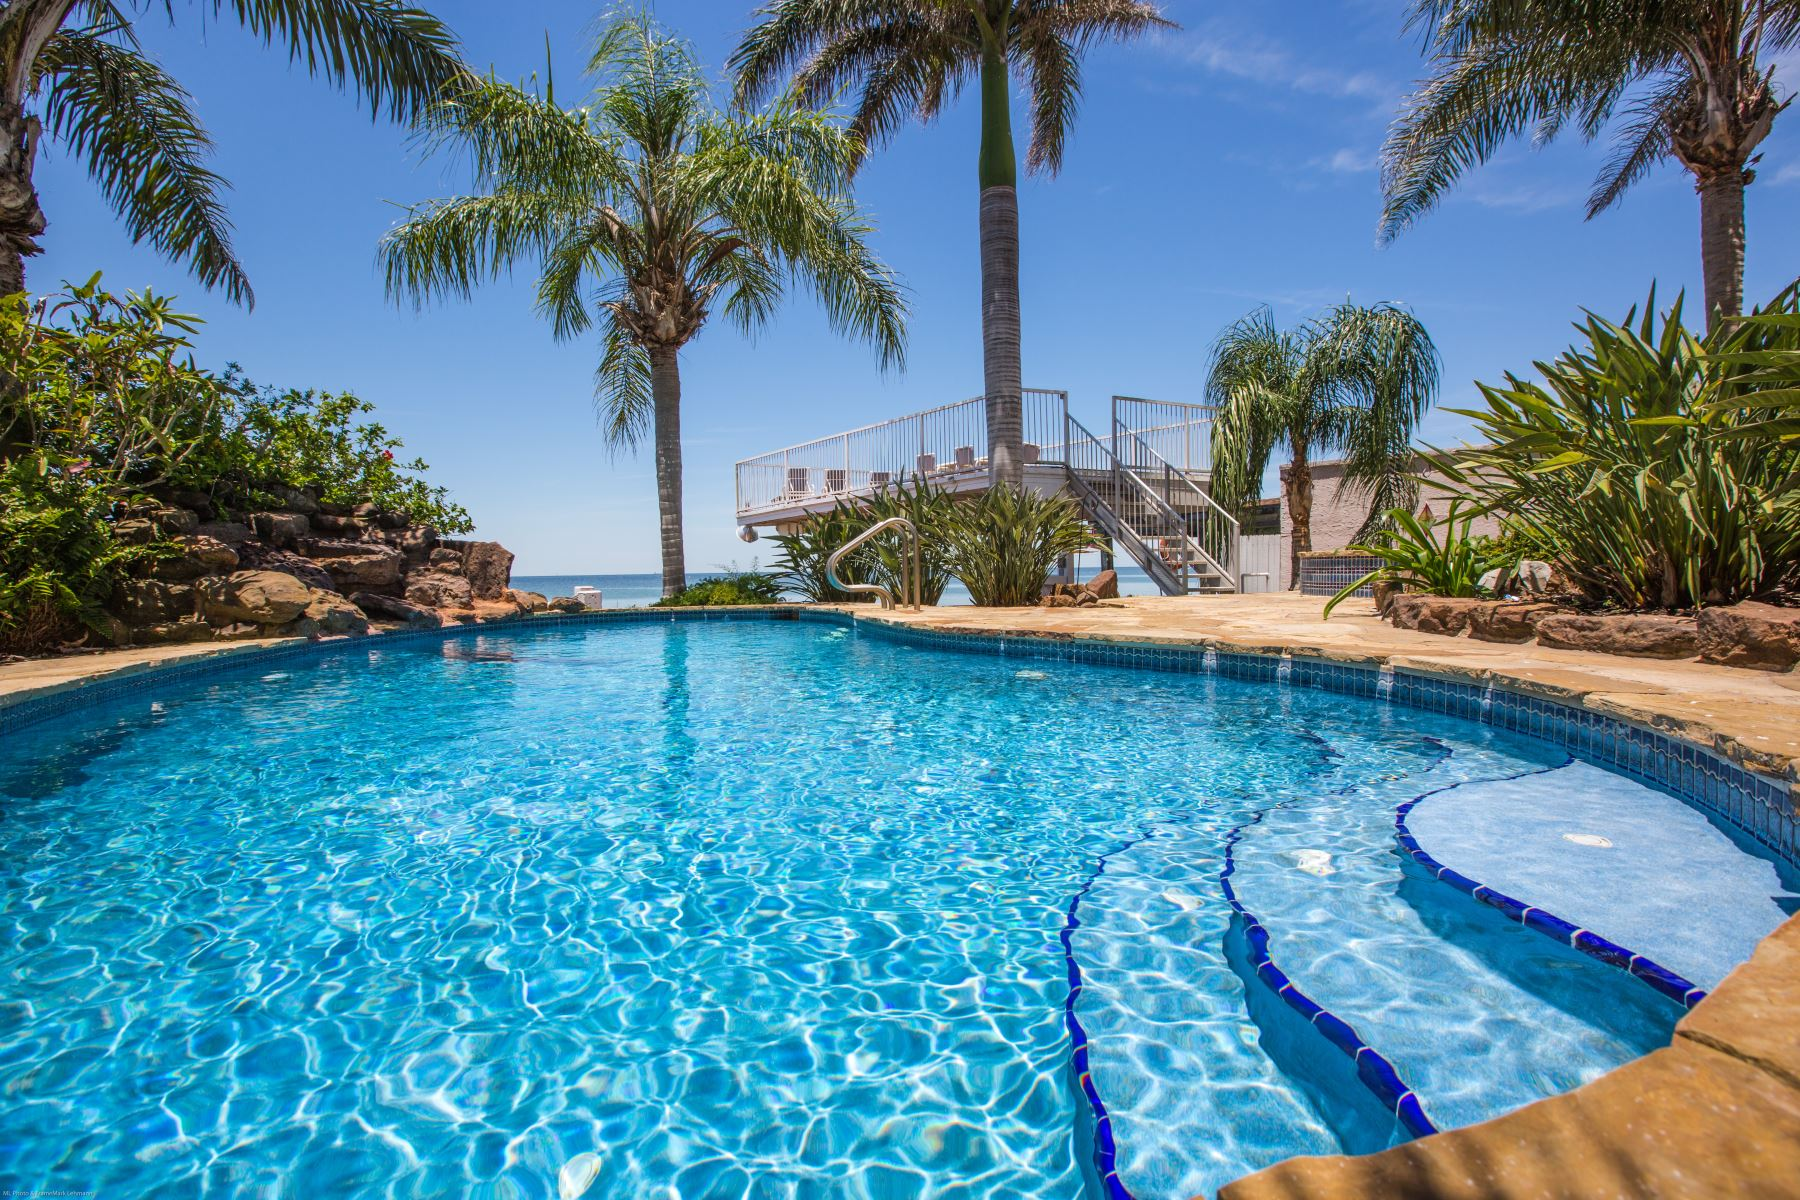 Vacation Home rentals online property and reservation management